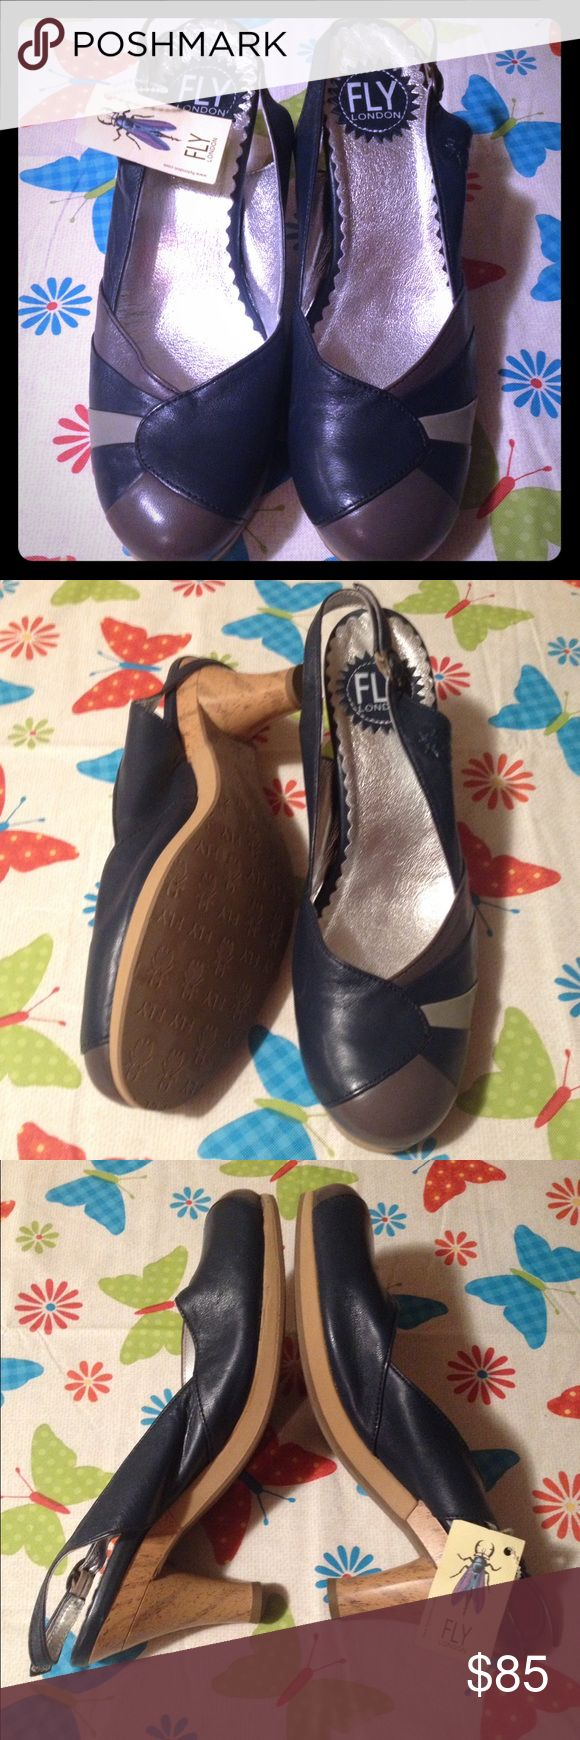 SALE❣❣100% Authentic Fly London High Heels❣❣ 🌟Dropped Price🌟100% Authentic Fly London High Heels. Super cute!! Never worn 😳 My mother is a shop-alcoholic! No lie. If I could walk in high heels, I'd be keeping them❣ Fly London Shoes Heels